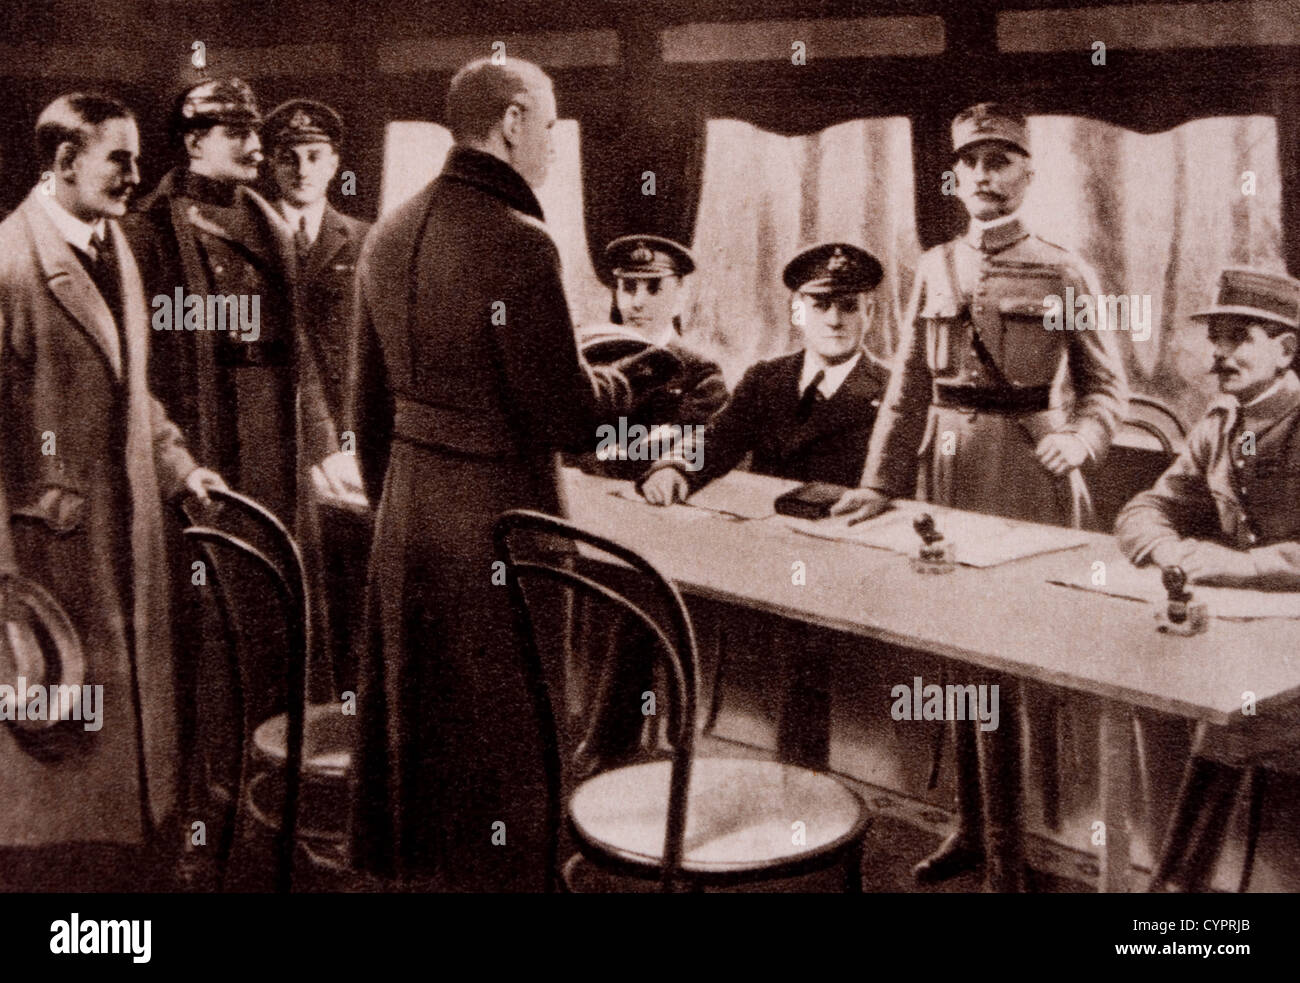 Armistice Signing Ceremony Between Germany and Allied Nations, Compiegne, France, November 11, 1918 - Stock Image